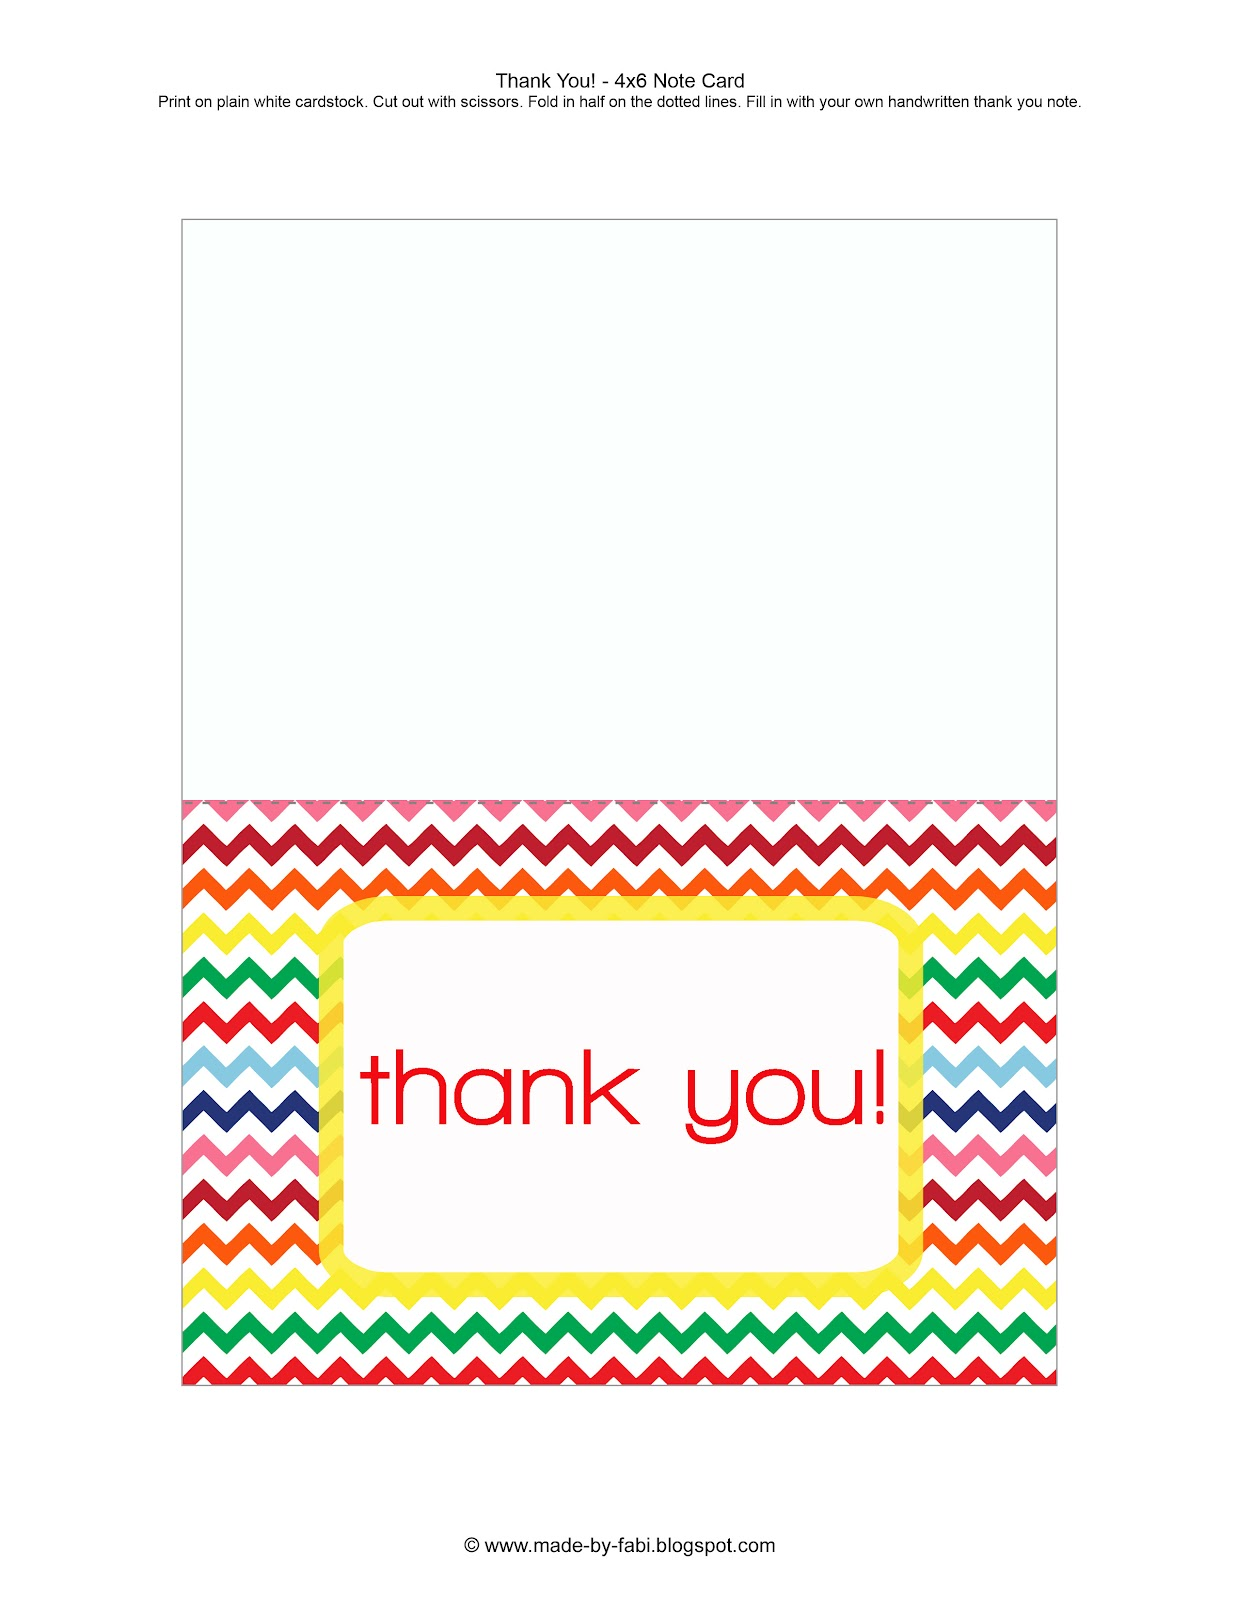 Free-Printable-Thank-You-Cards-11.jpg (1236×1600) | Cards and ...